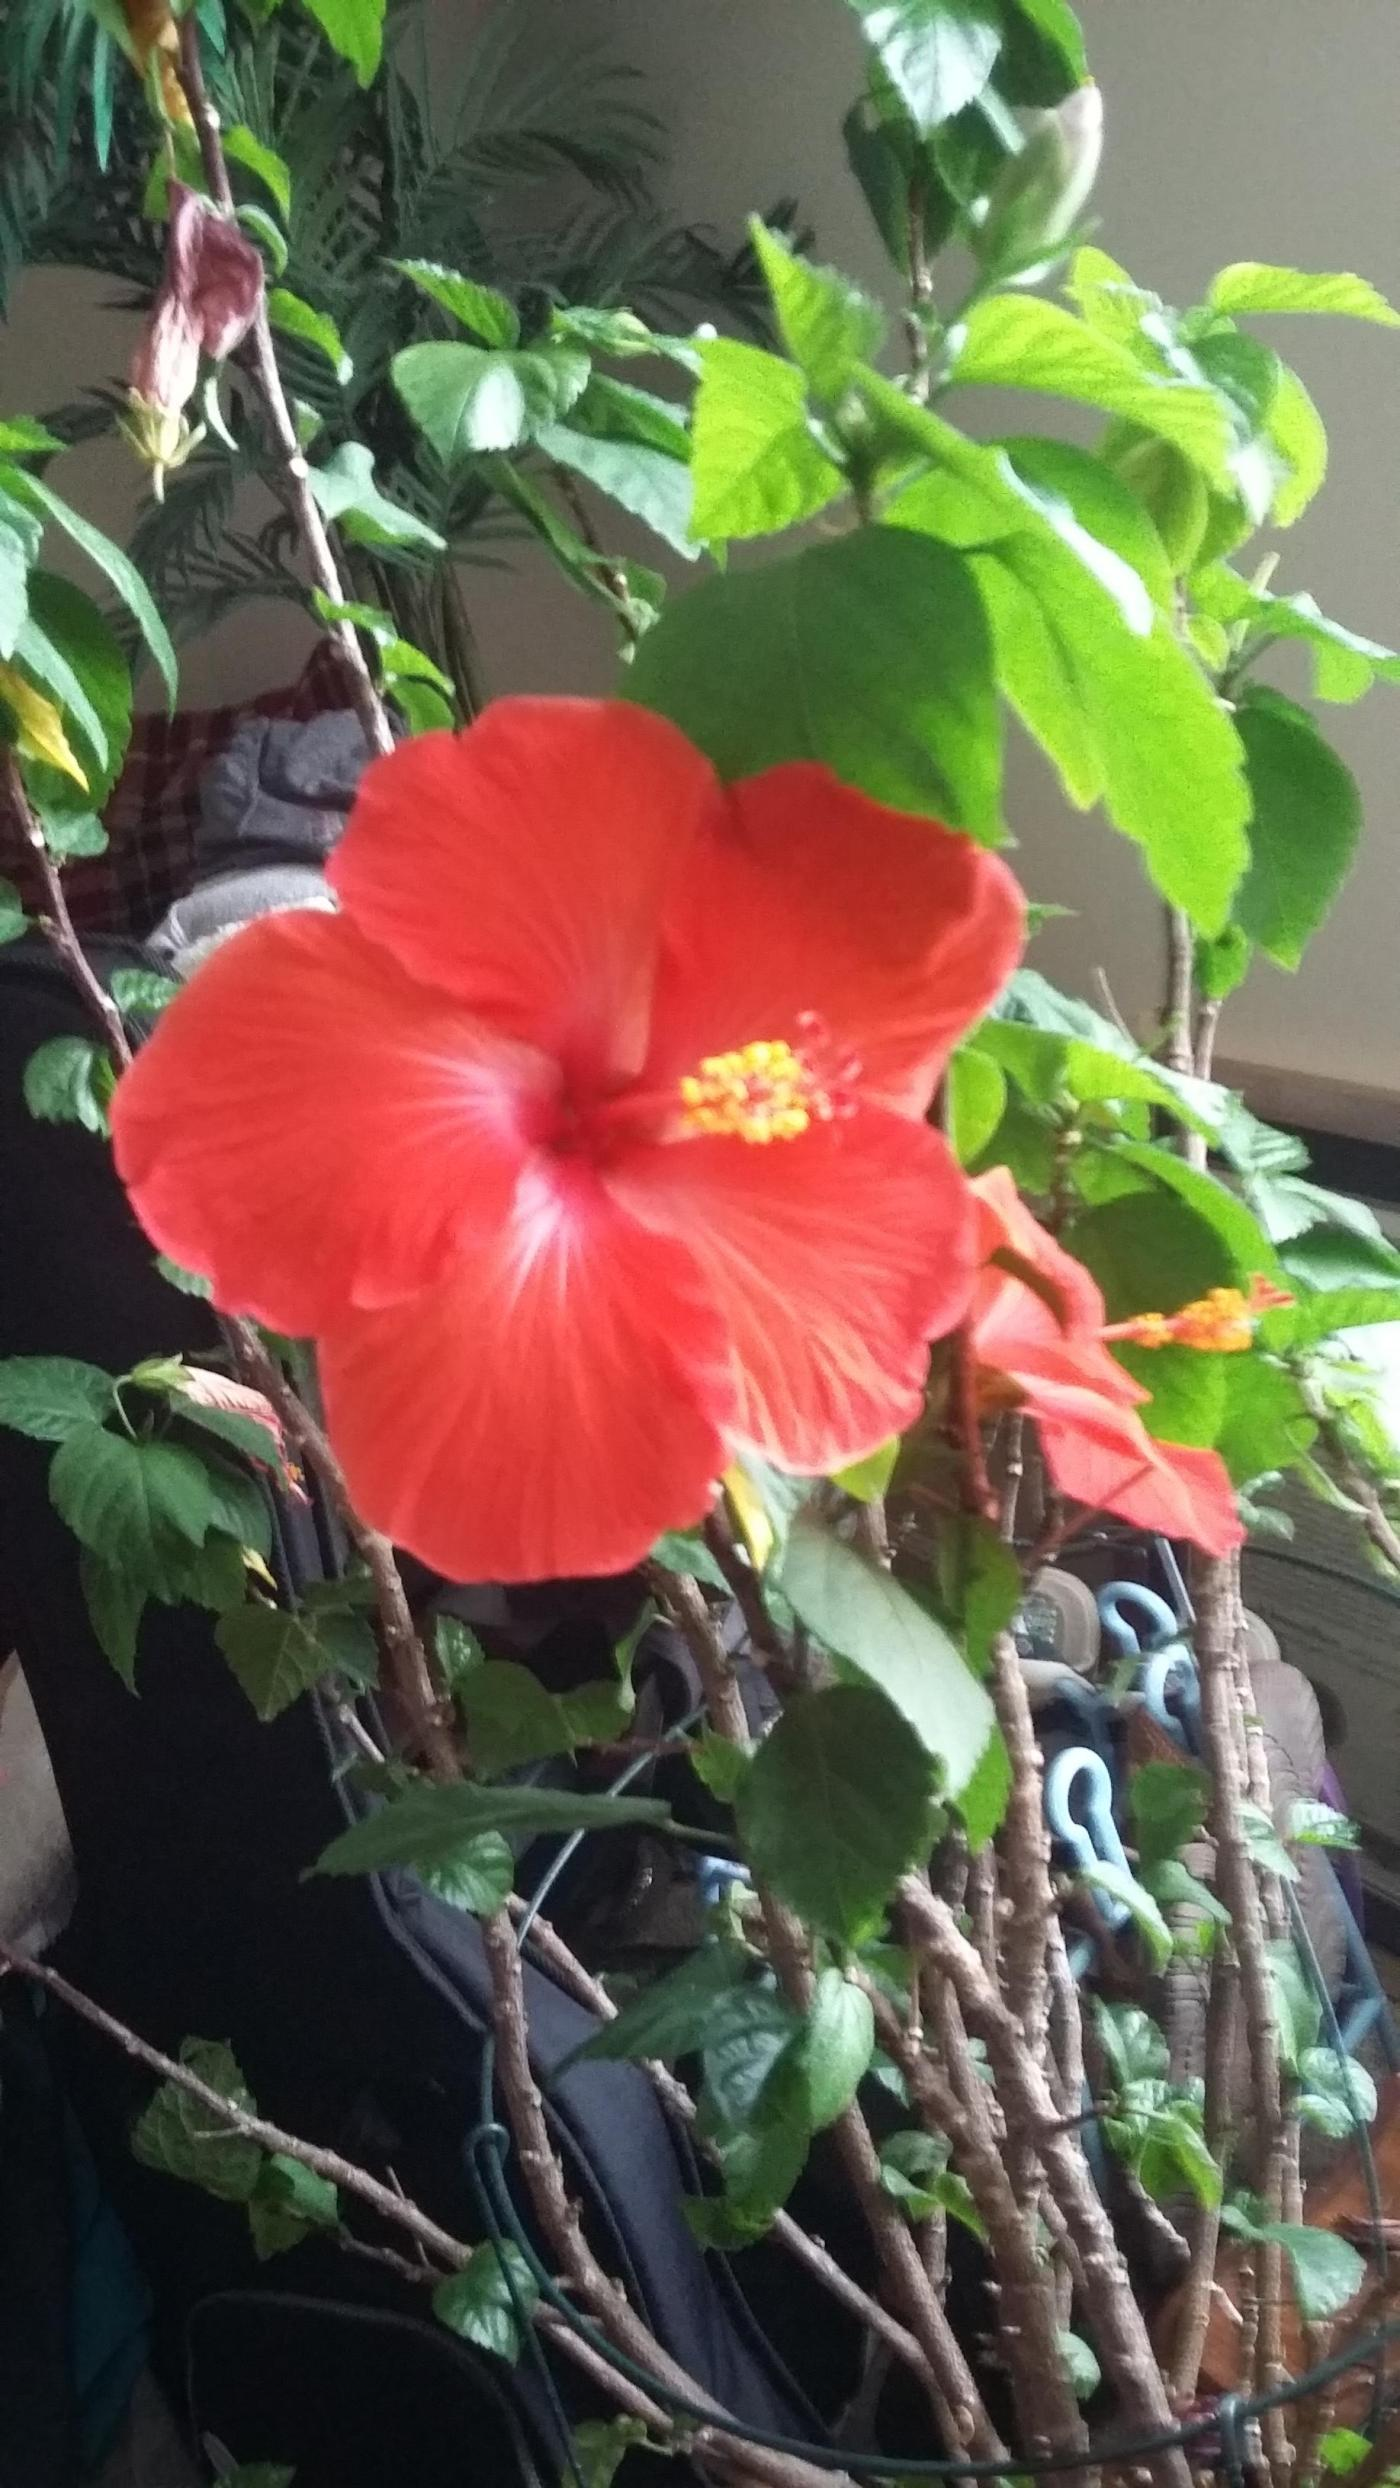 My Sunday morning wakeup surprise – 5 lovely flowers on my hibiscus